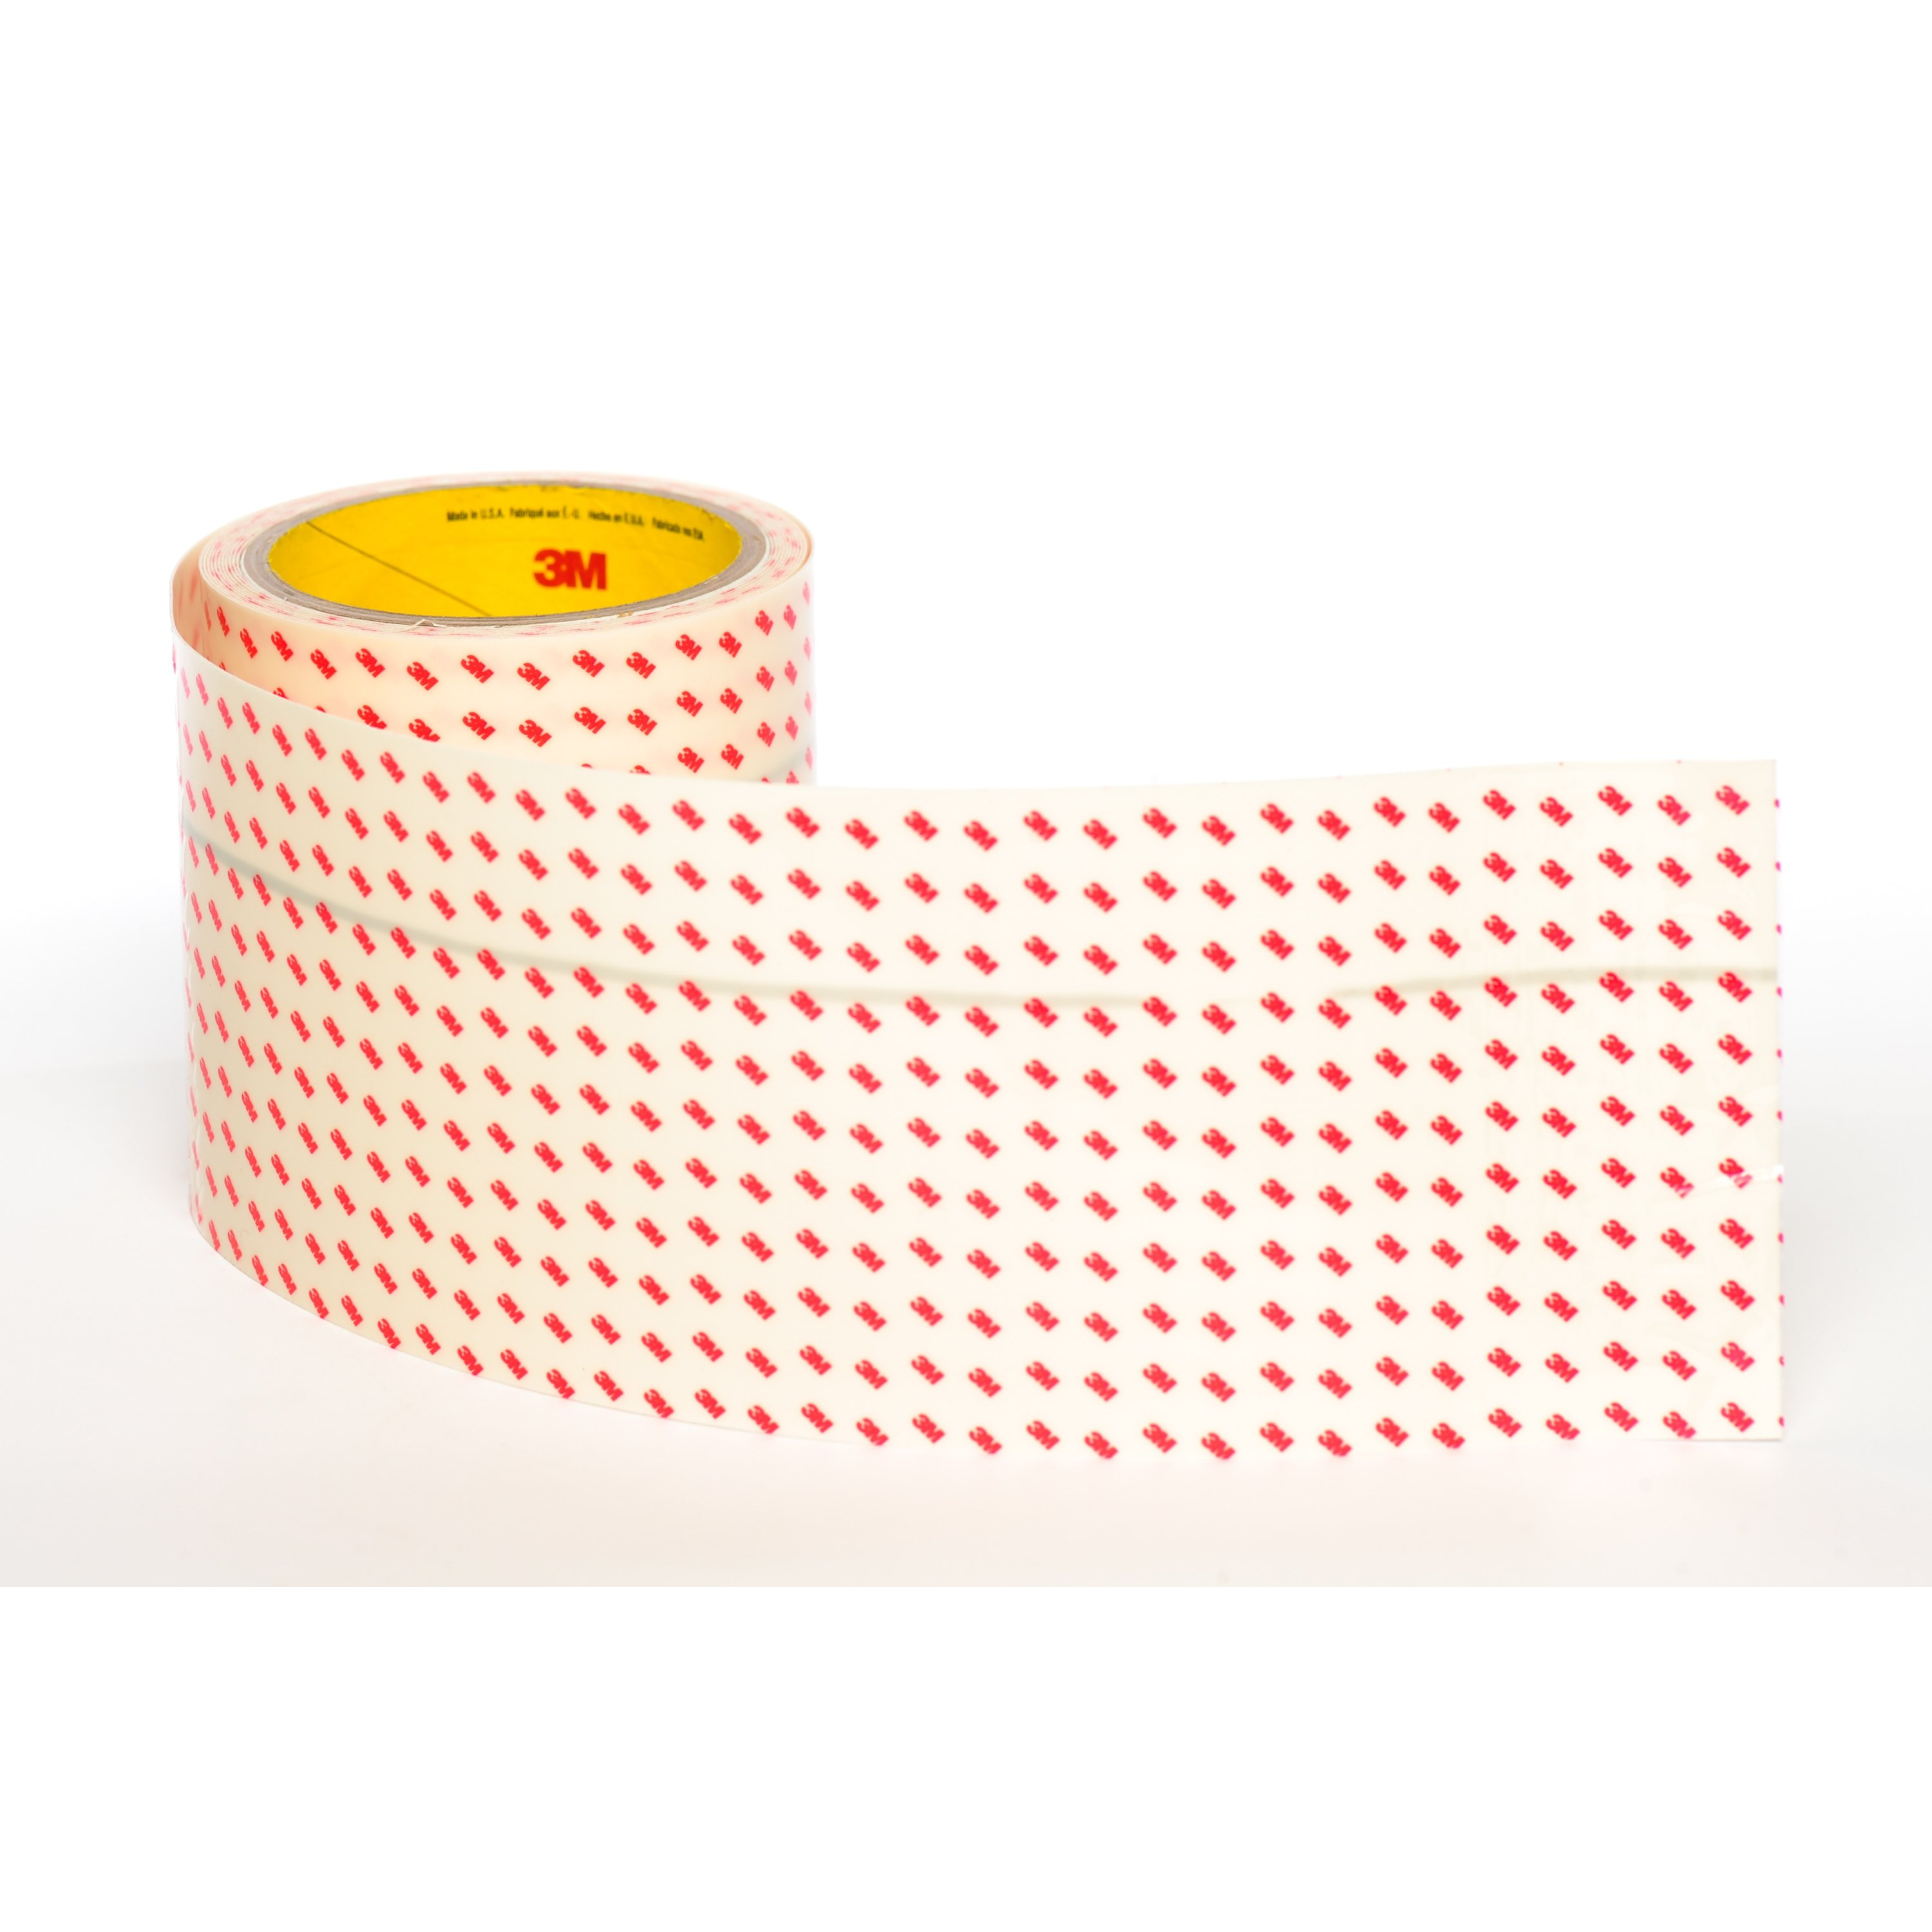 3M™ Polyurethane Protective Tape 8657DL Dual Liner, Flame Retardant, Translucent White, 4 in x 3 yd, 1 Roll/Case Sample